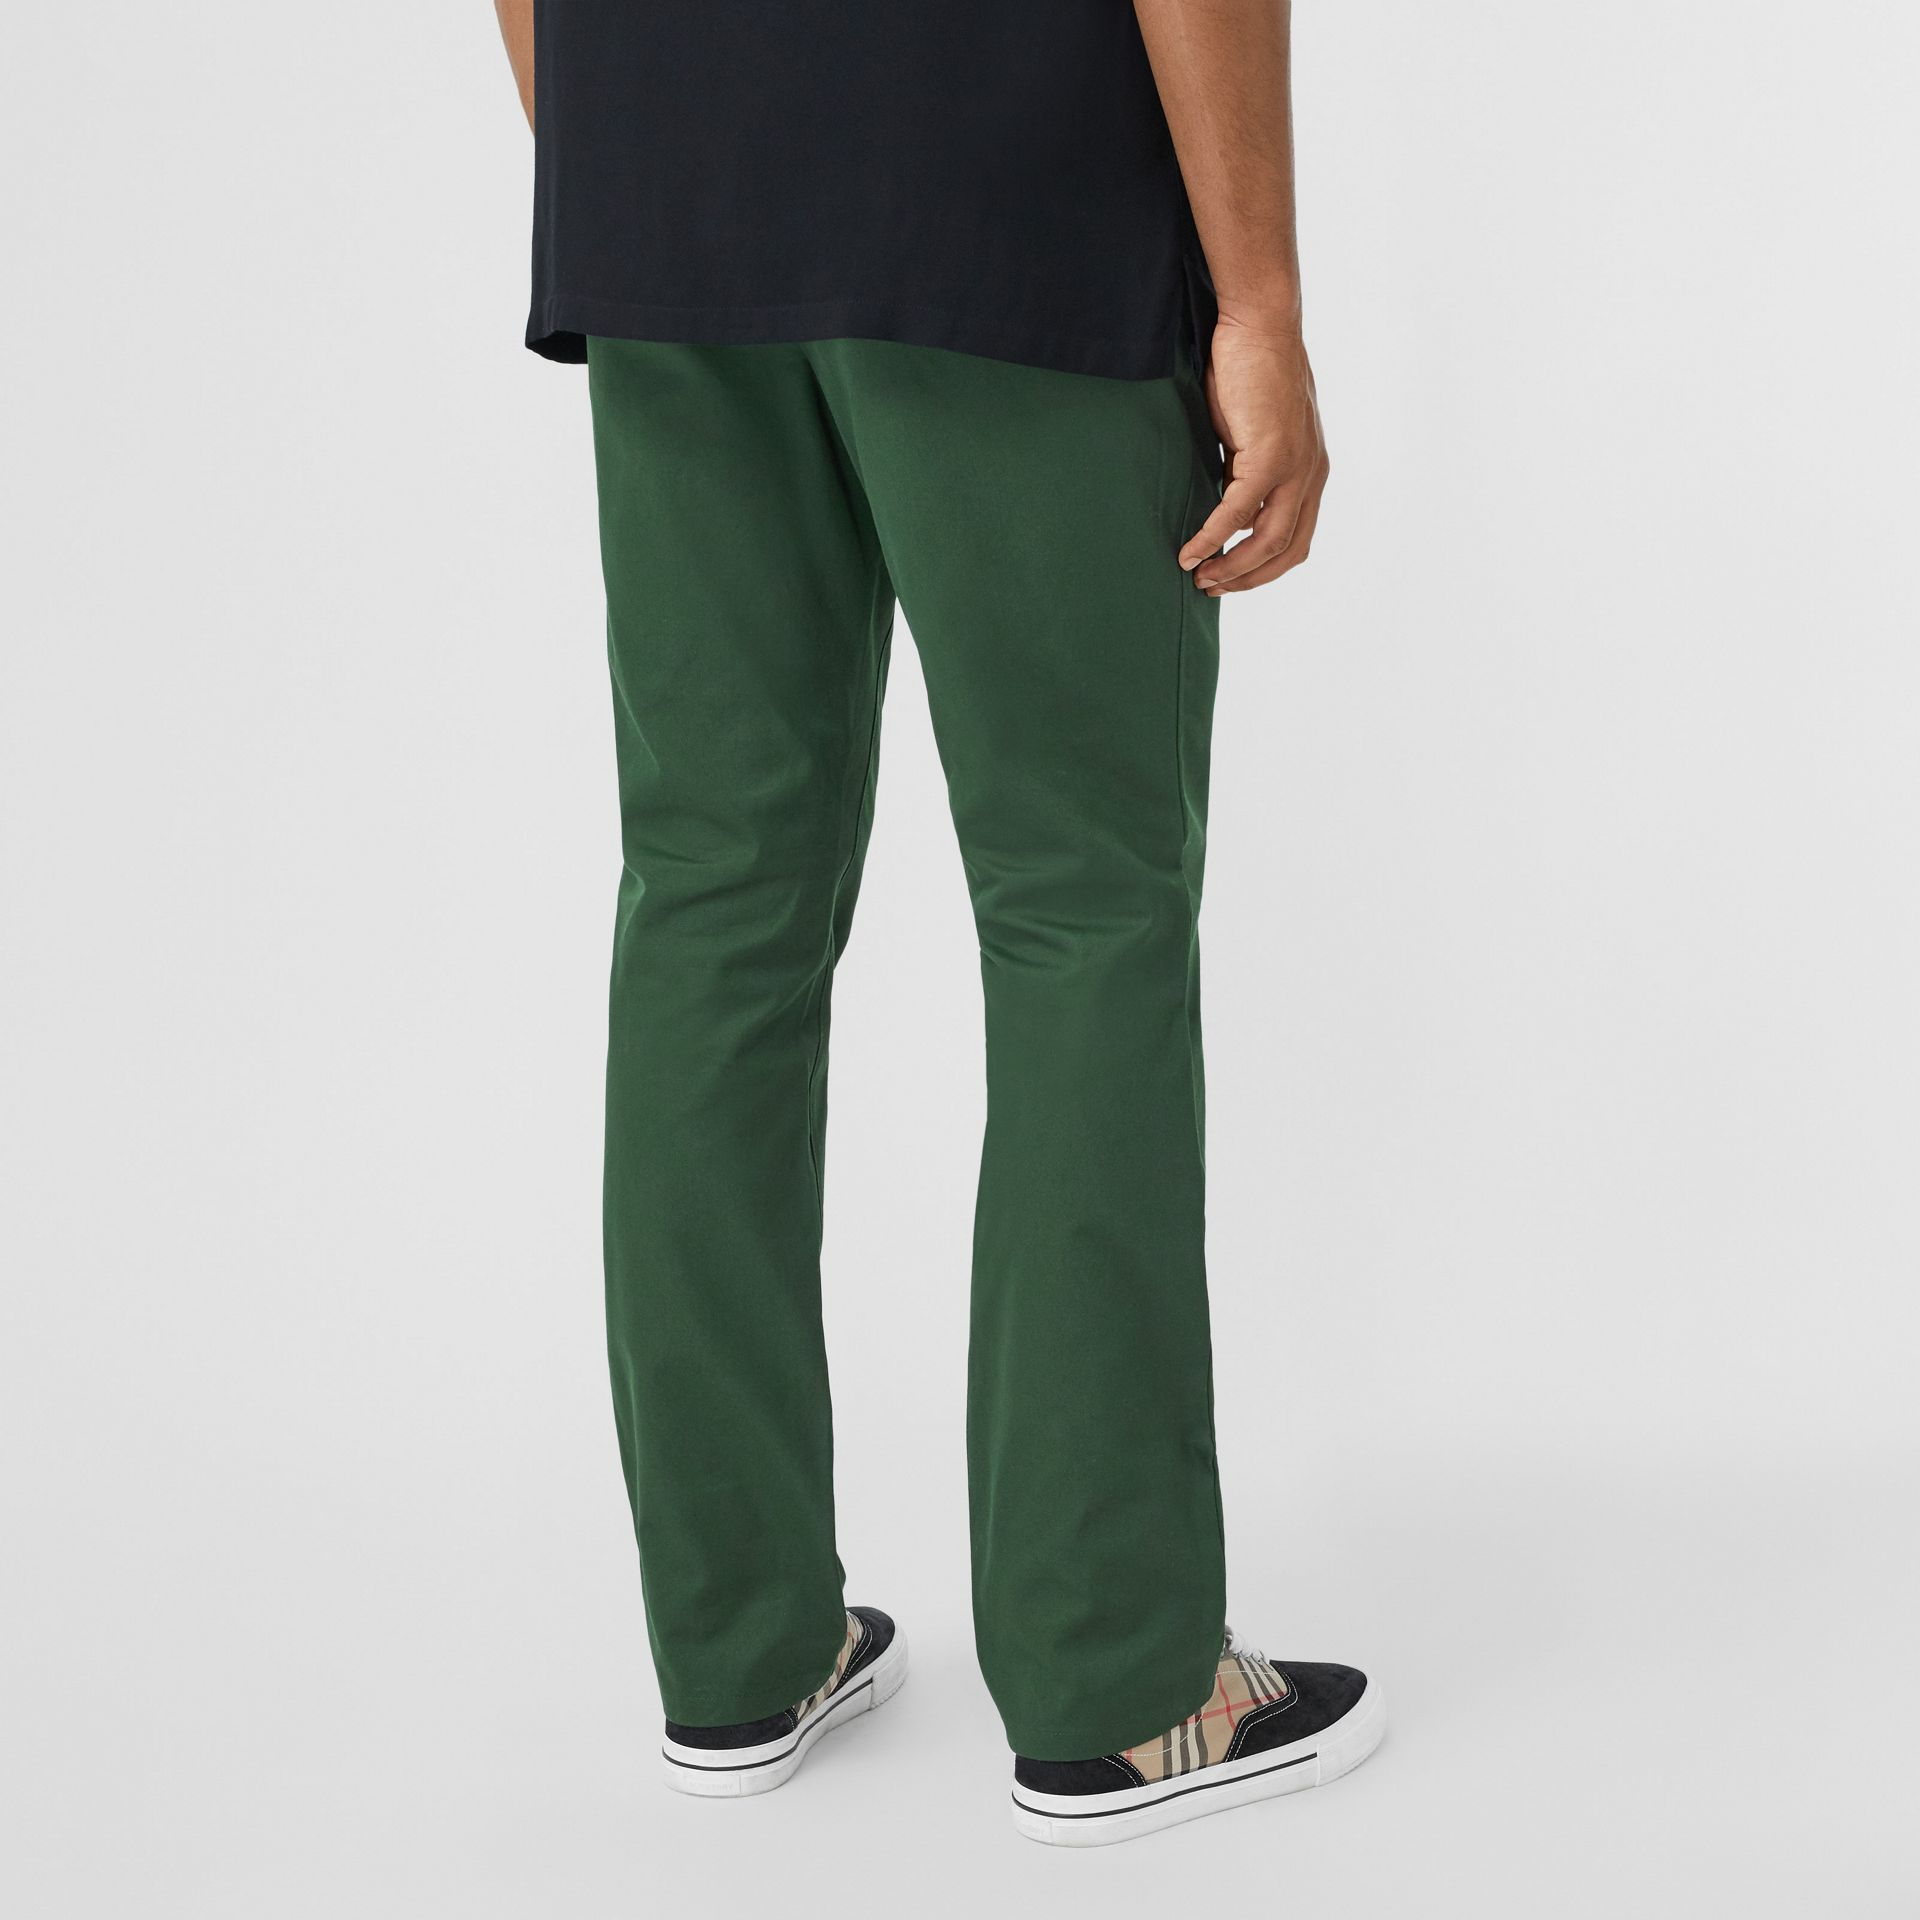 Classic Fit Cotton Chinos in Dark Pine Green - Men | Burberry - gallery image 2